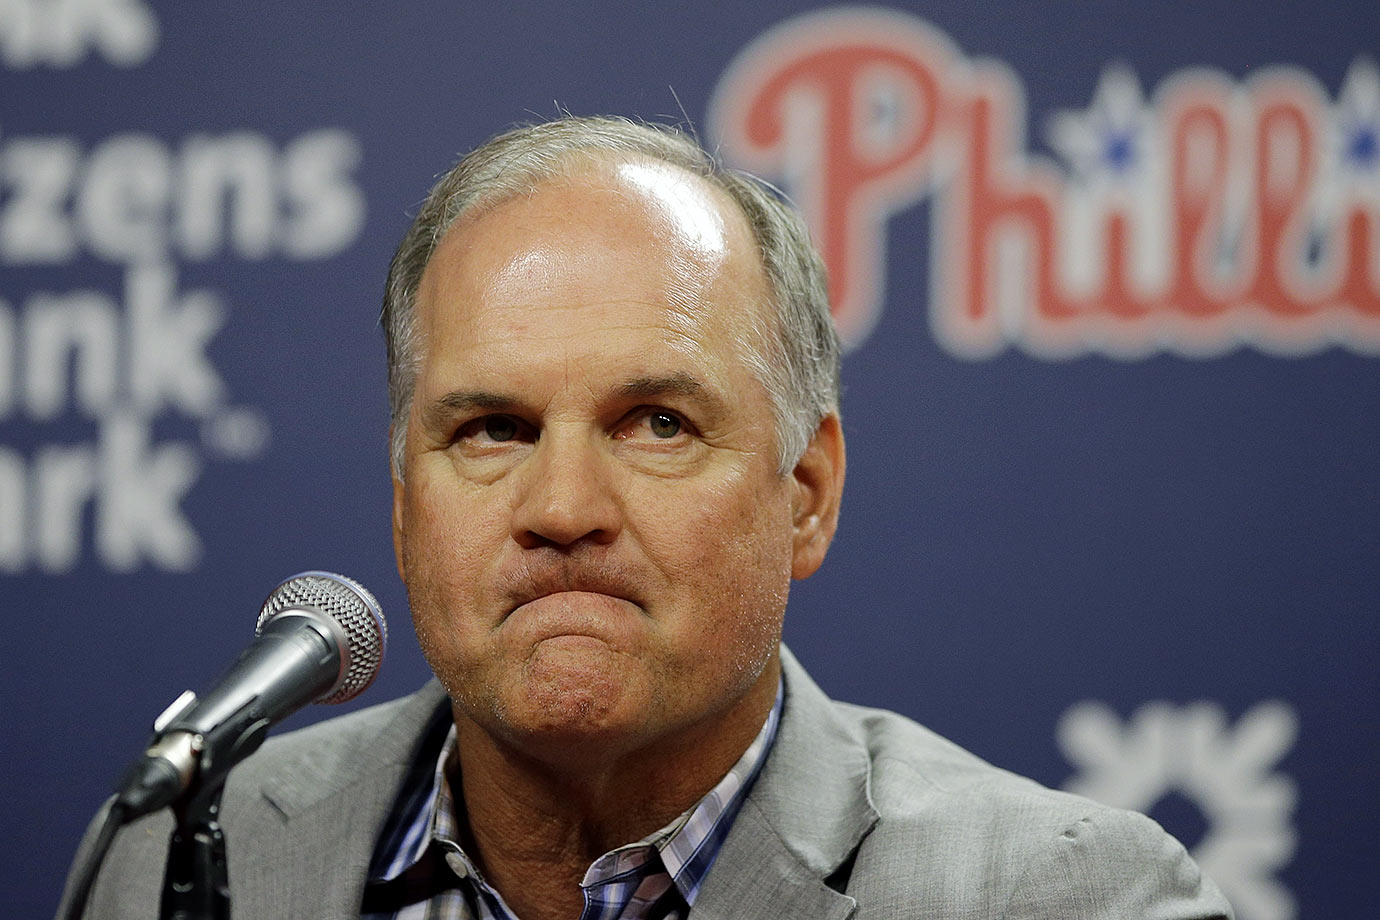 Ryne Sandberg stepped down from being the Phillies manager in the early parts of the 2015 season, probably because working for the Phillies has been the most depressing job in sports lately.